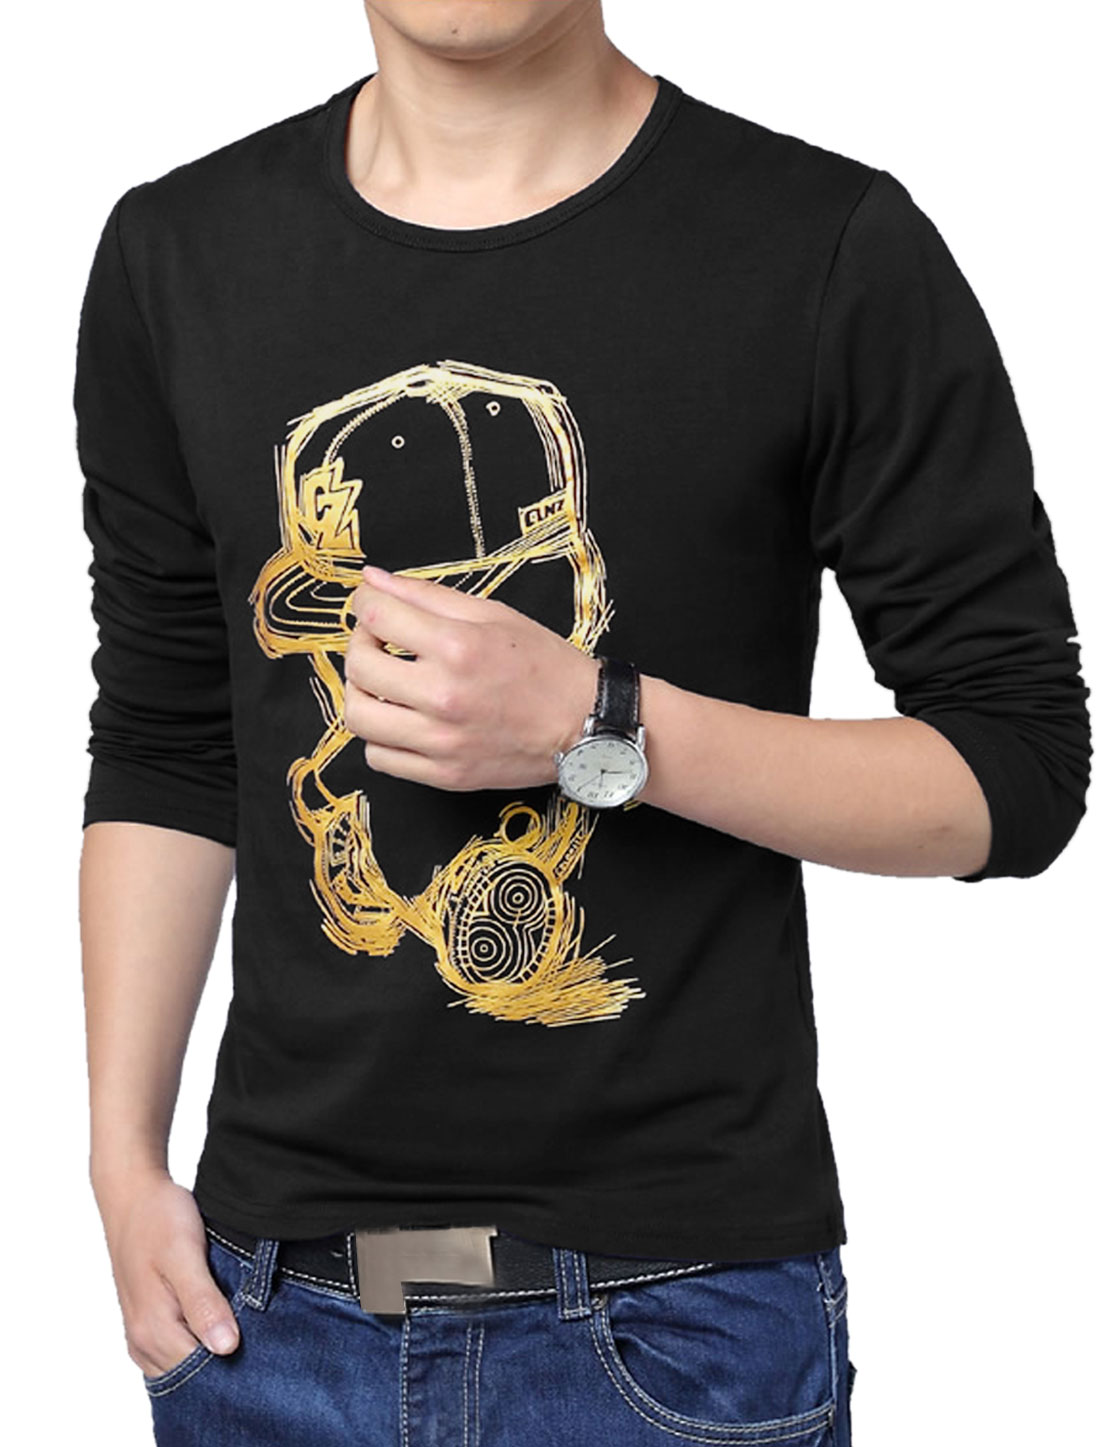 Men Leisure Style Round Neck Long Sleeve T-shirt Black L